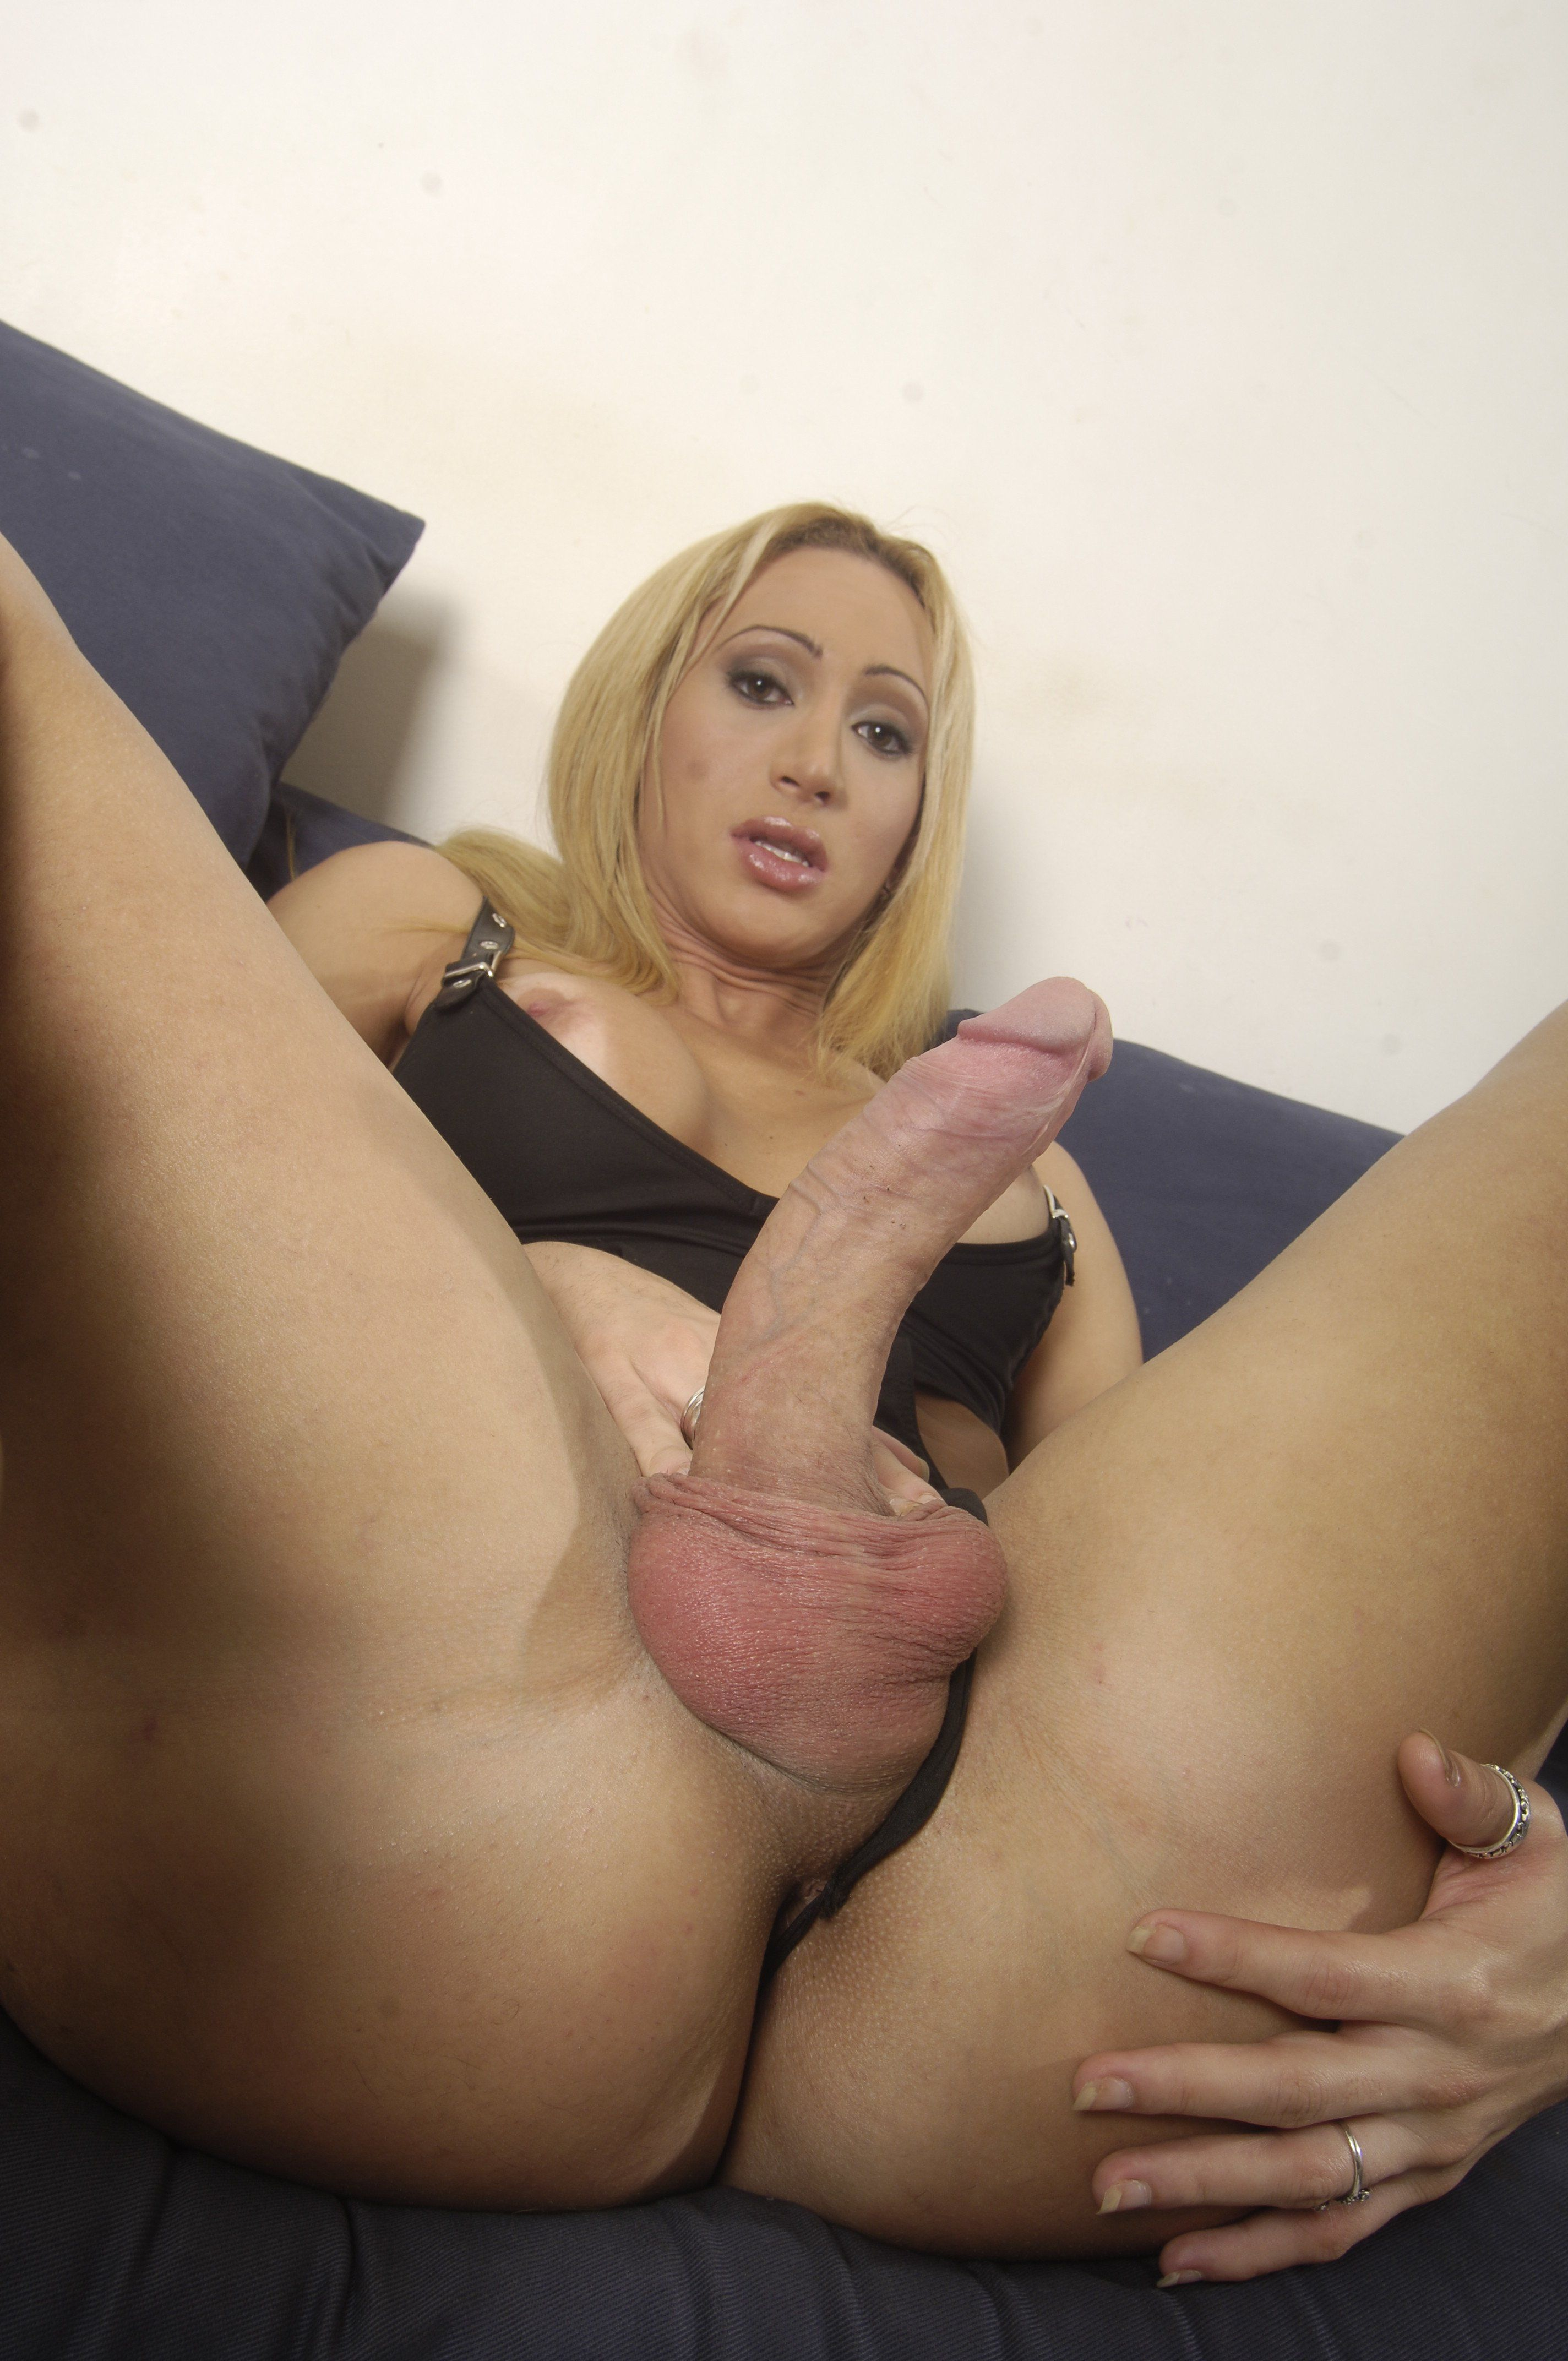 2 Dicks In 1 Vagina shemale putting two dicks in a girls asshole naked gallery